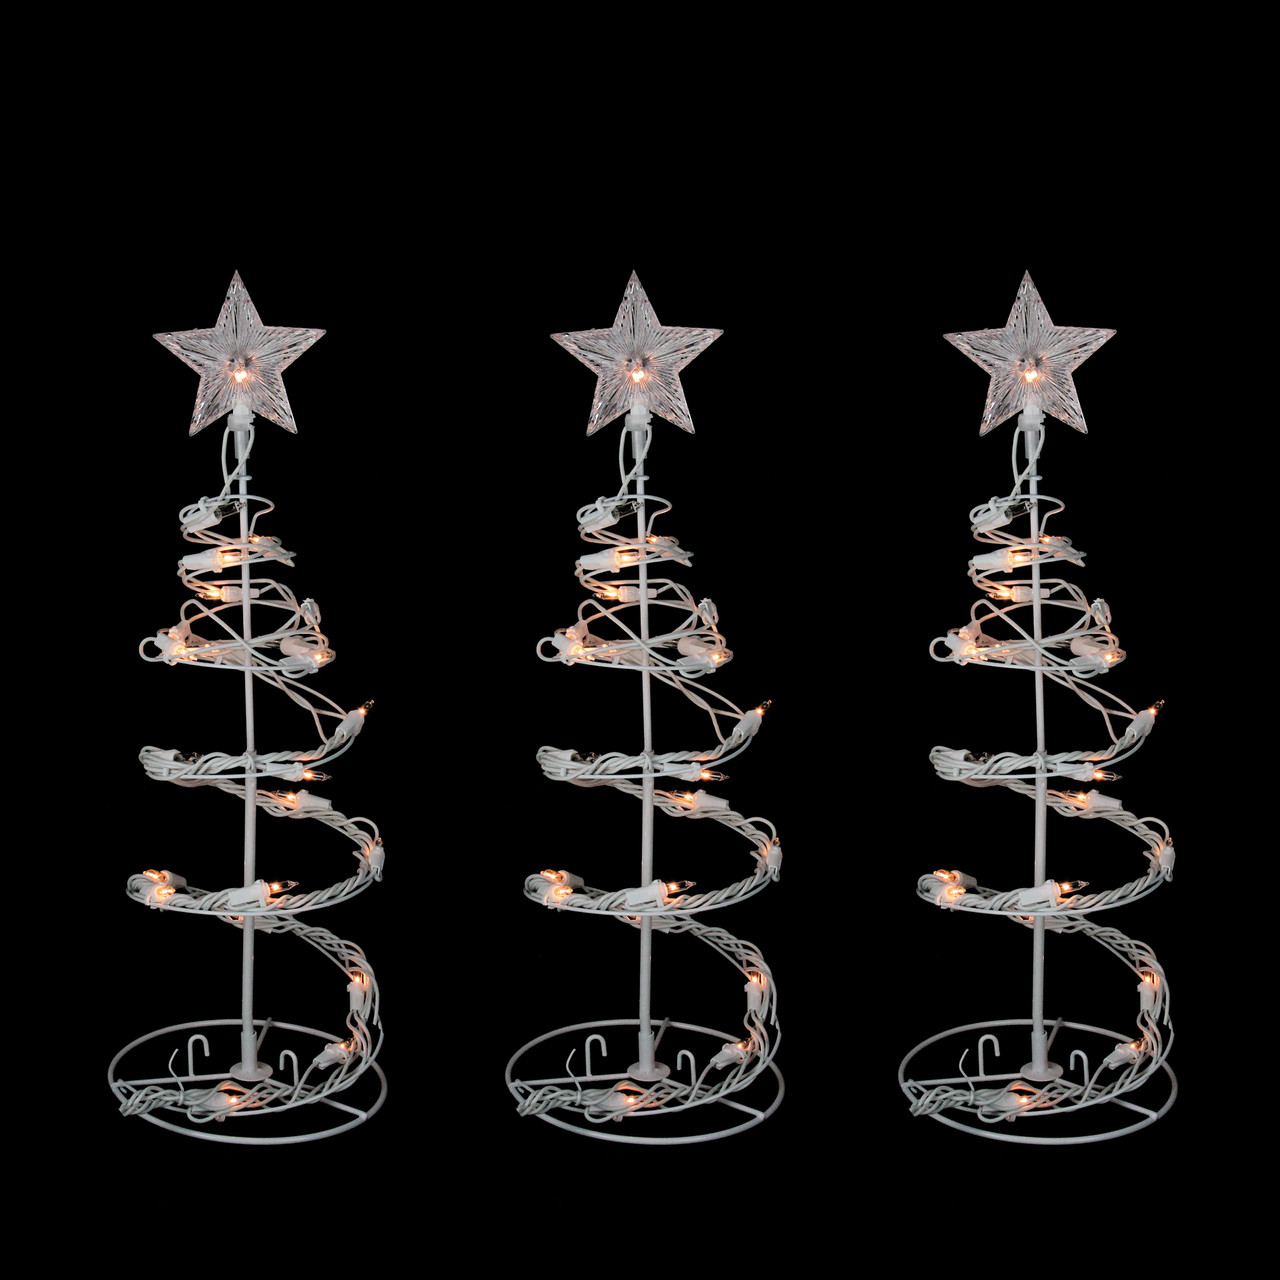 Set of 3 Clear Lighted Outdoor Spiral Walkway Christmas Trees Outdoor Decorations 18  - 31463880 & Set of 3 Clear Lighted Outdoor Spiral Walkway Christmas Trees ...